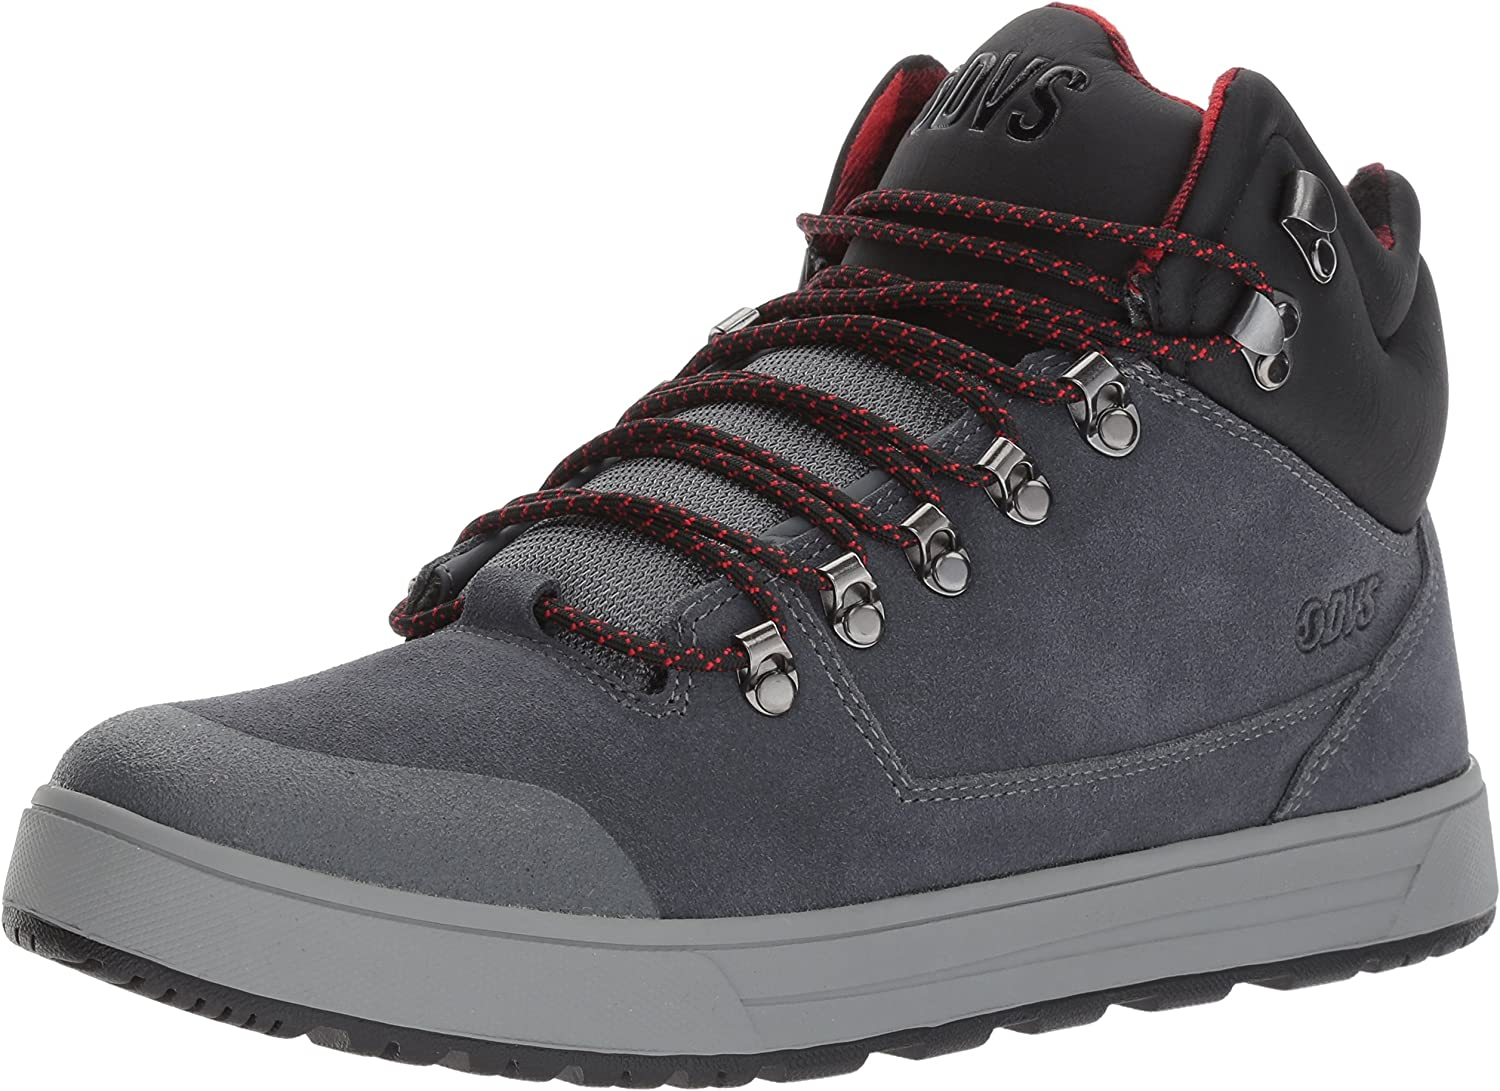 DVS Men's Vanguard Snow Boot, Charcoal Suede Ferguson, 10 Medium US